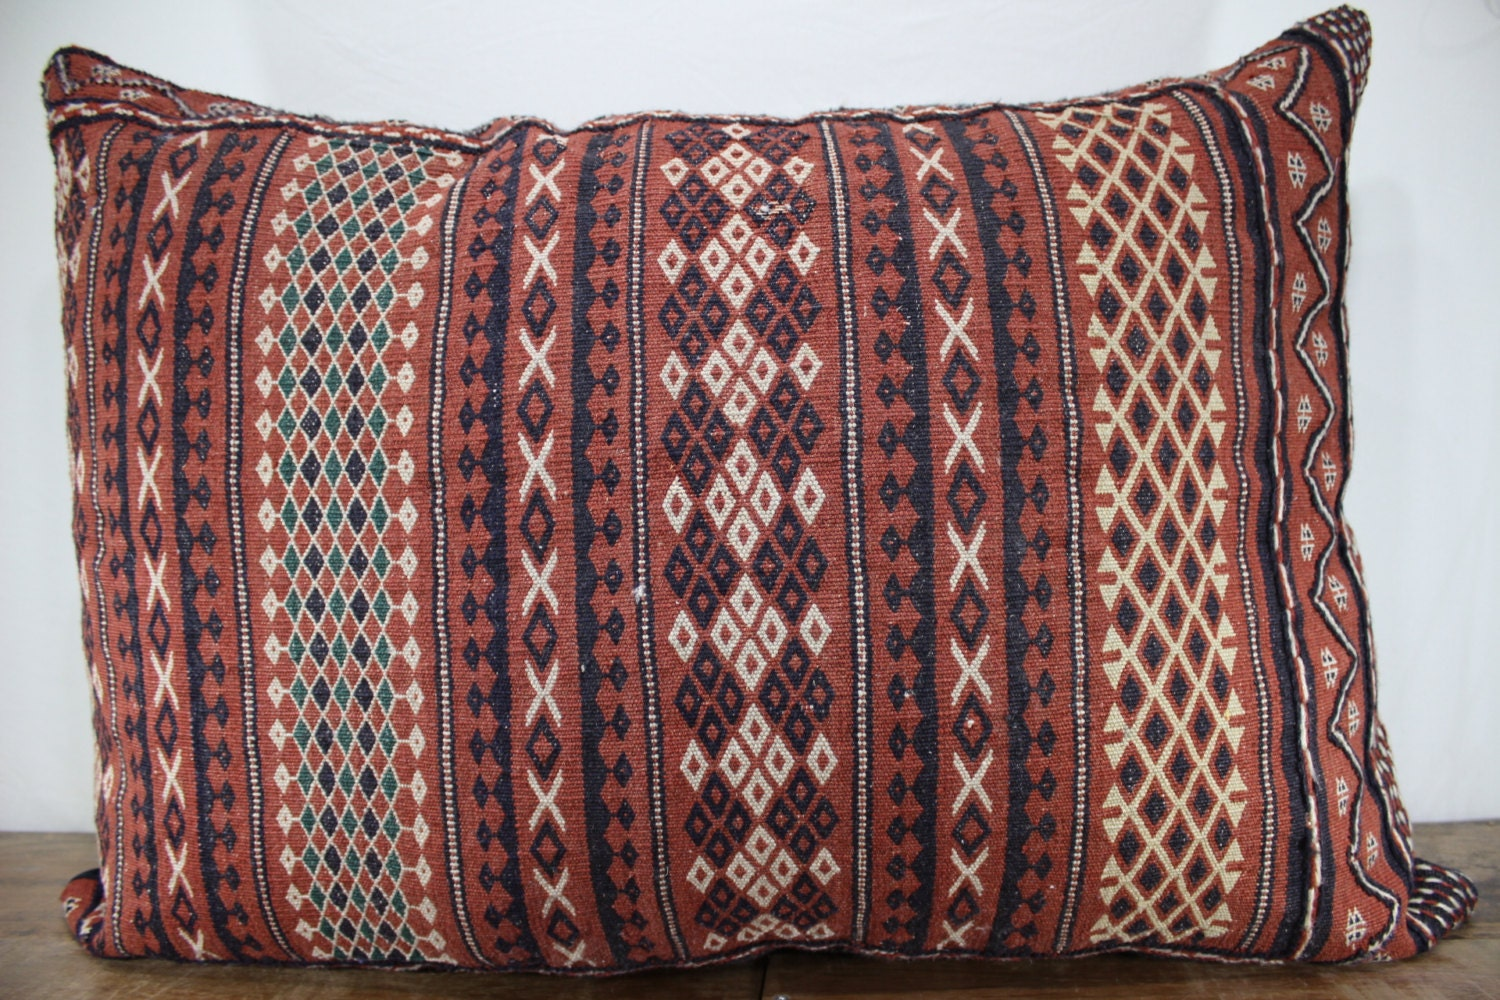 28x40 King size kilim pillow floor cushion cover kilim cushion